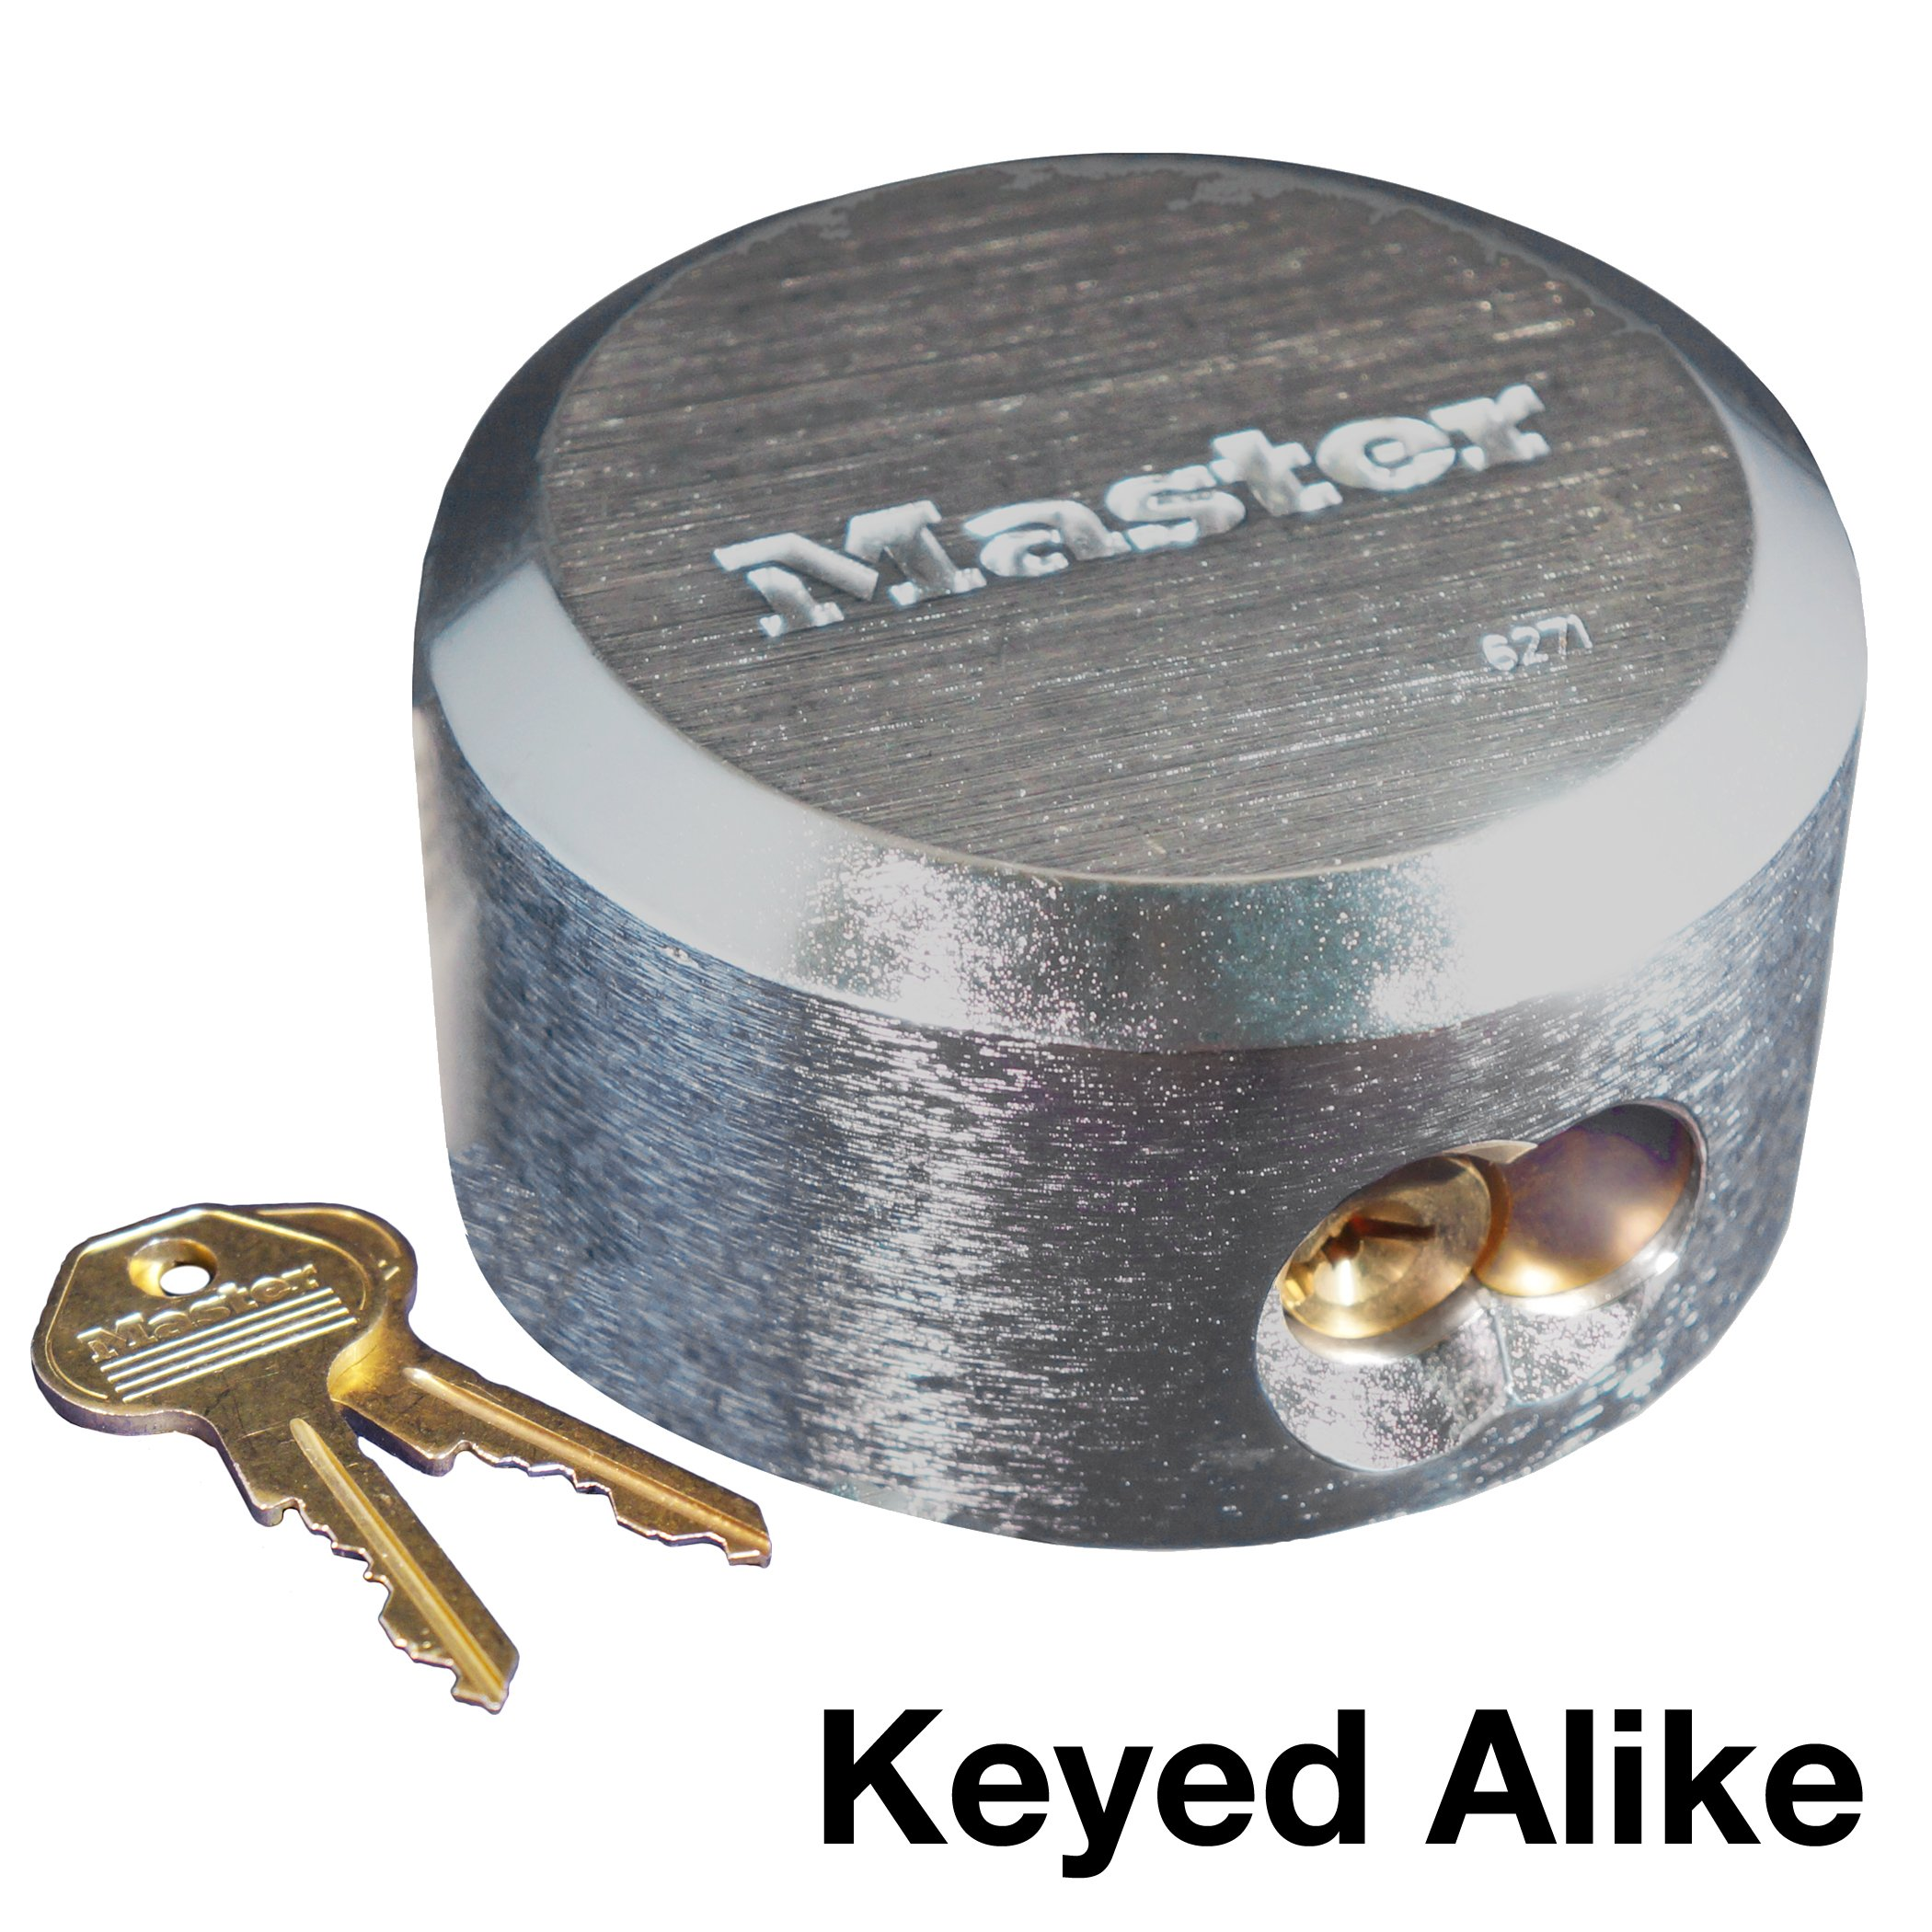 Master Lock 6271KA 6 Pack 2-7/8in. ProSeries Reinforced Hidden Shackle Rekeyable Pin Tumbler Keyed Alike Padlock, Chrome by Master Lock (Image #1)